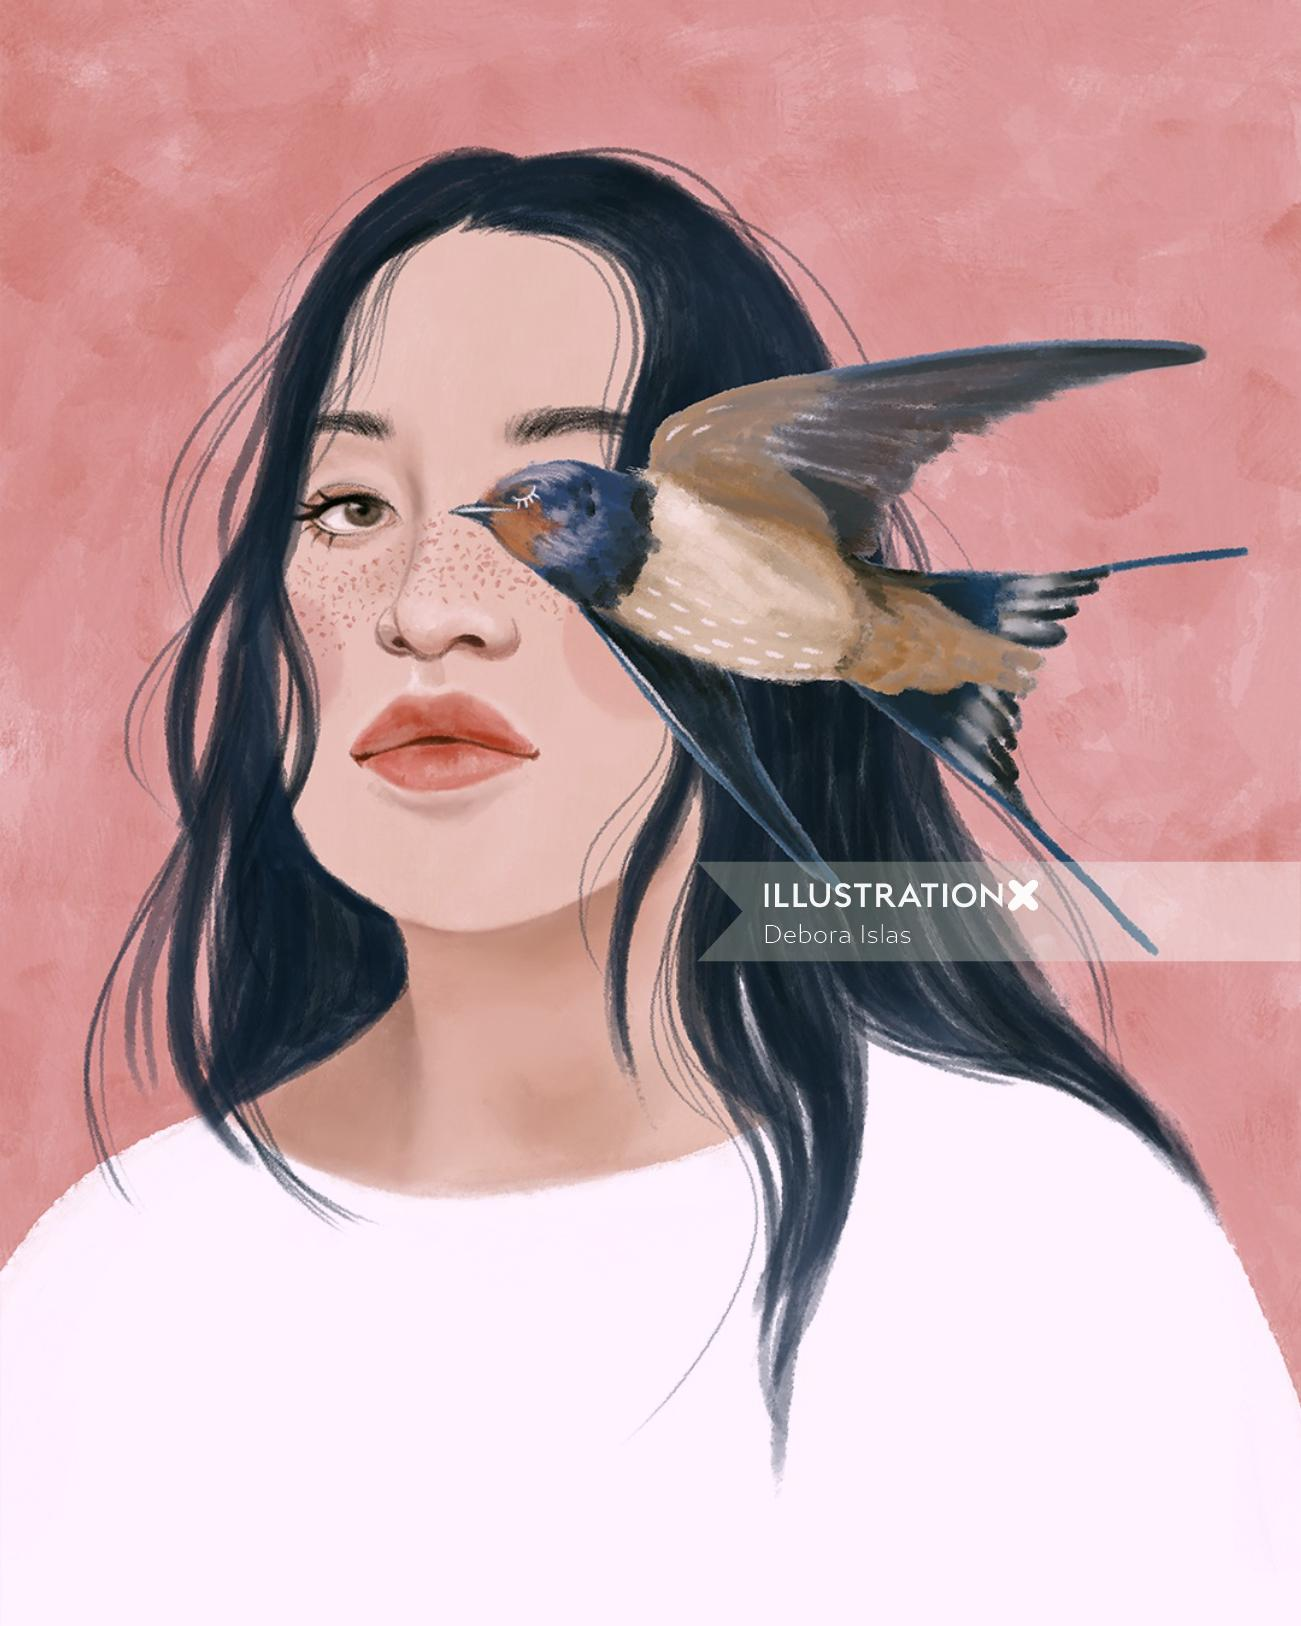 Women portrait illustration by Debora Islas